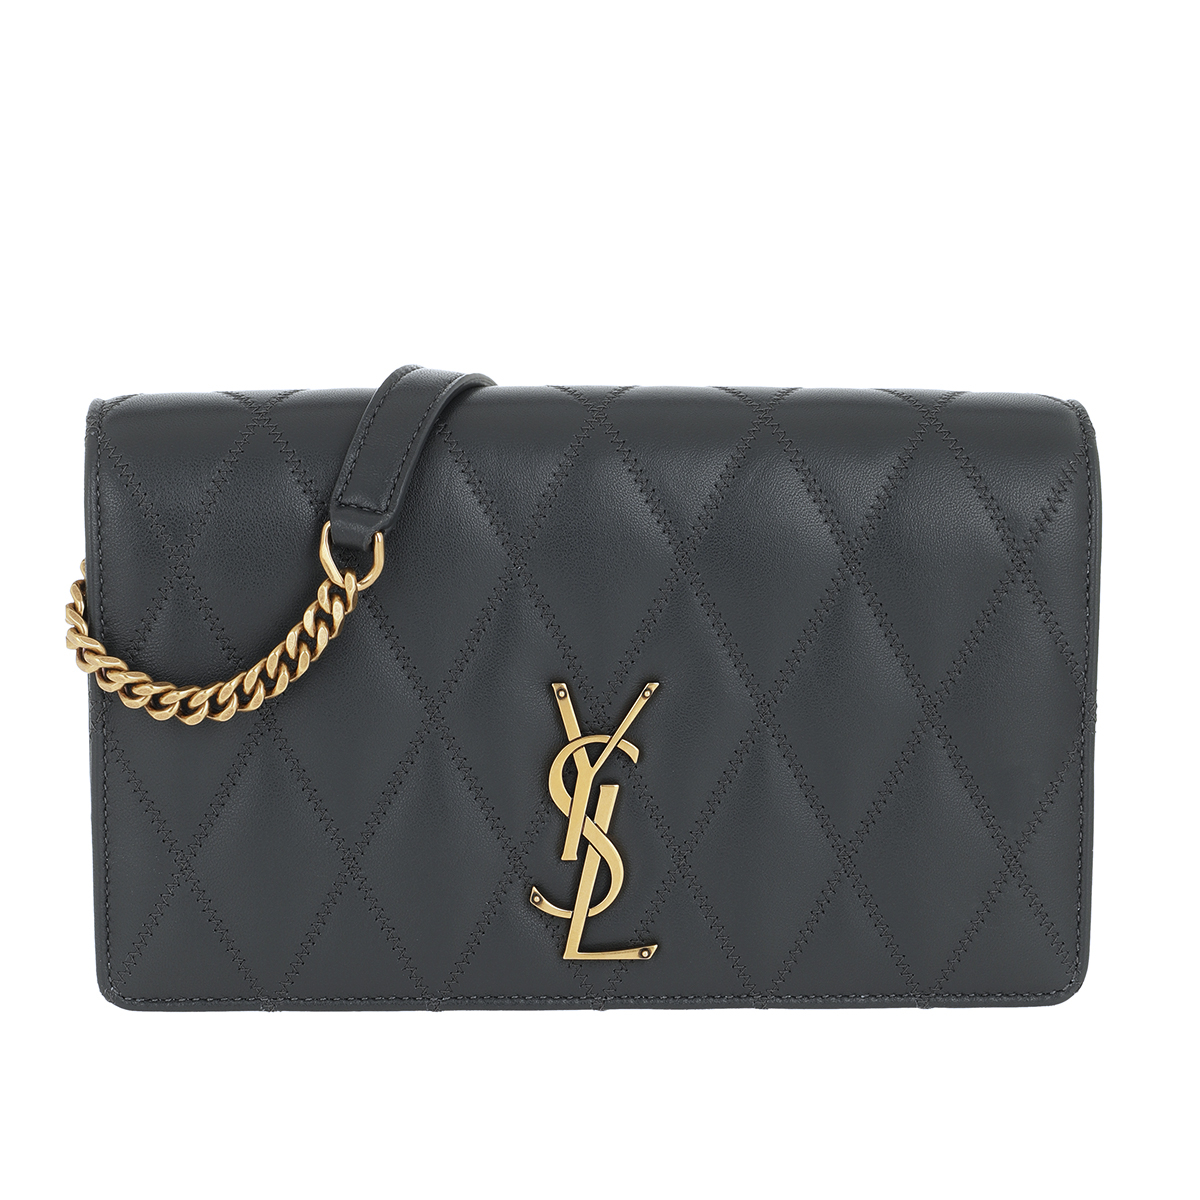 Saint Laurent Umhängetasche - Angie Chain Bag Diamond Quilted Leather Dark Smog - in grau - für Damen